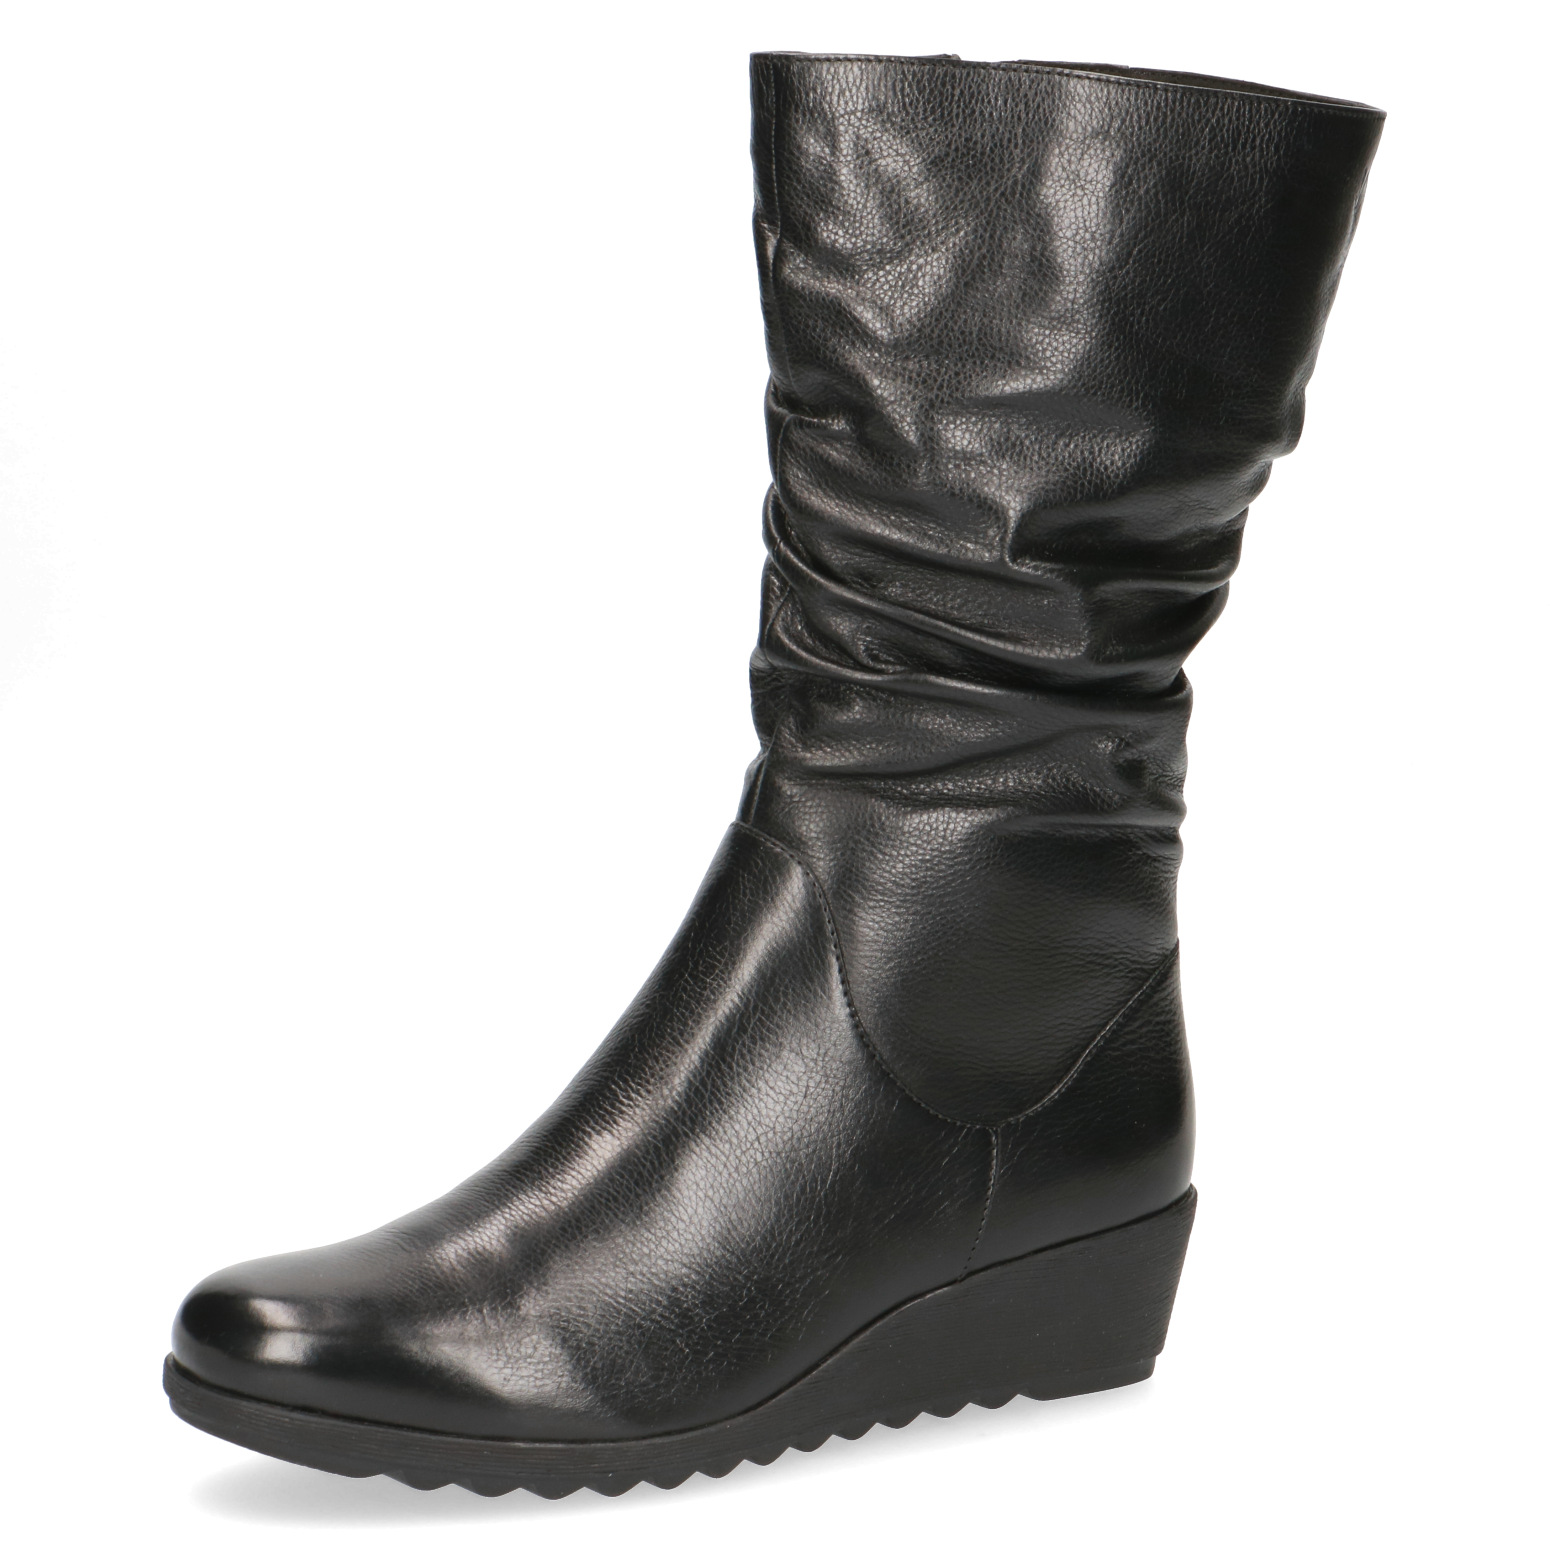 Caprice Eena black leather boot